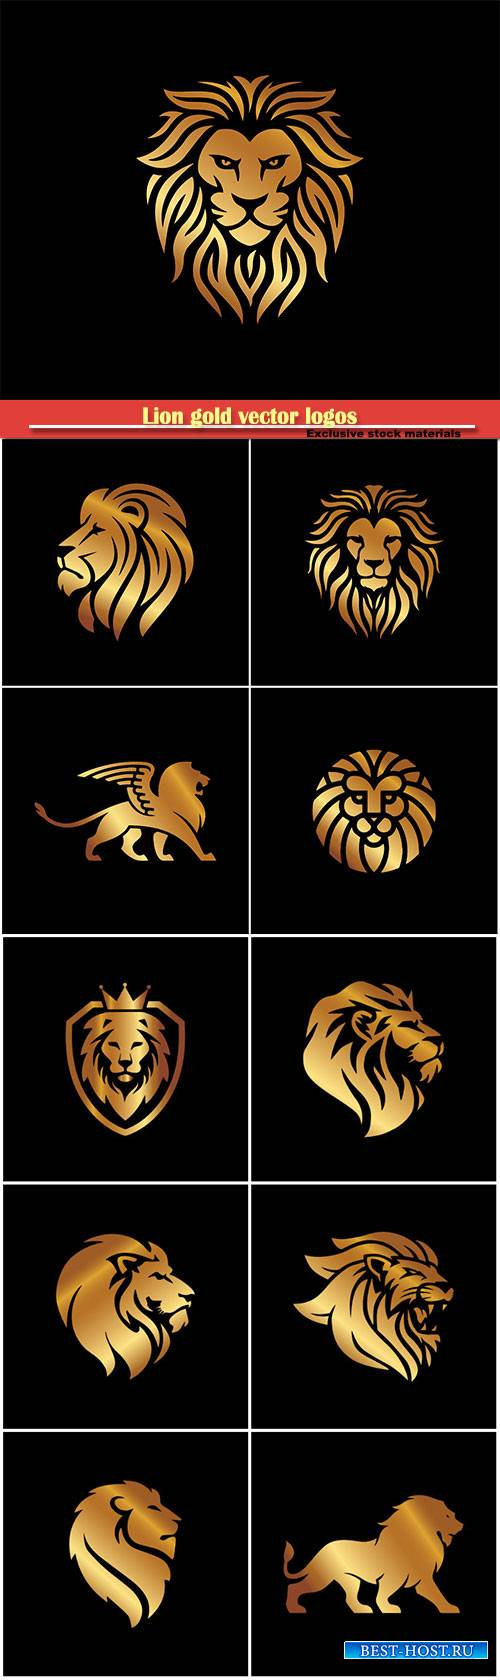 Lion gold vector logos on black background